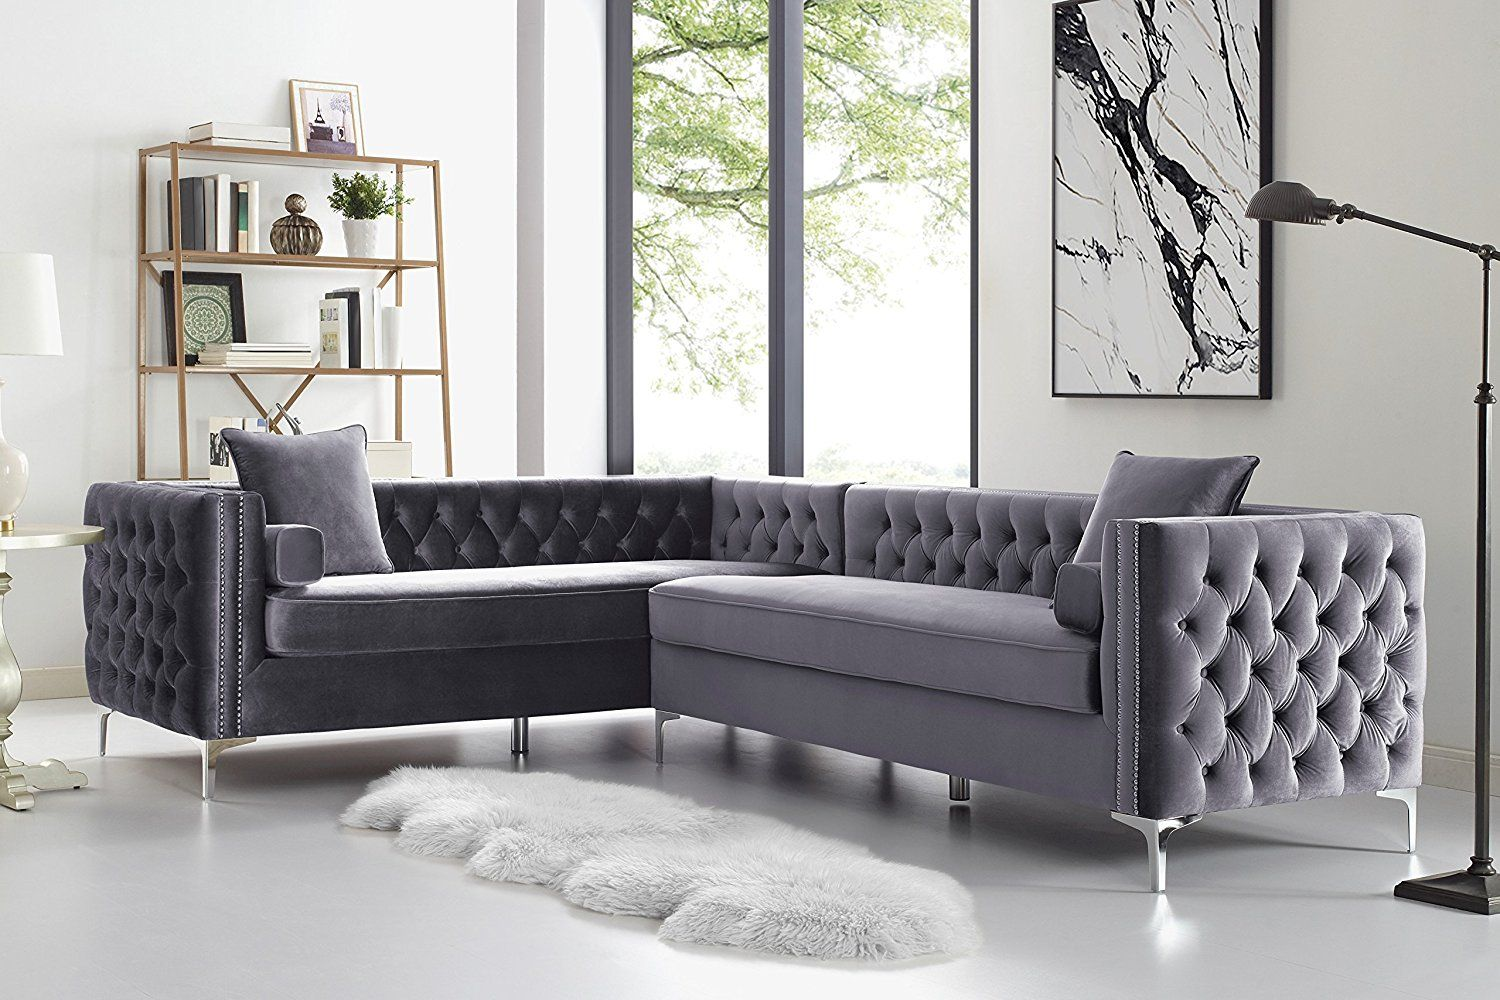 Amazon Com 120 Navy Blue Corner Sectional Sofa Button Tufted Silver Nail Head Trim Metal Y Legs Left Corner Sectional Sofa Sectional Sofa Sofa Design